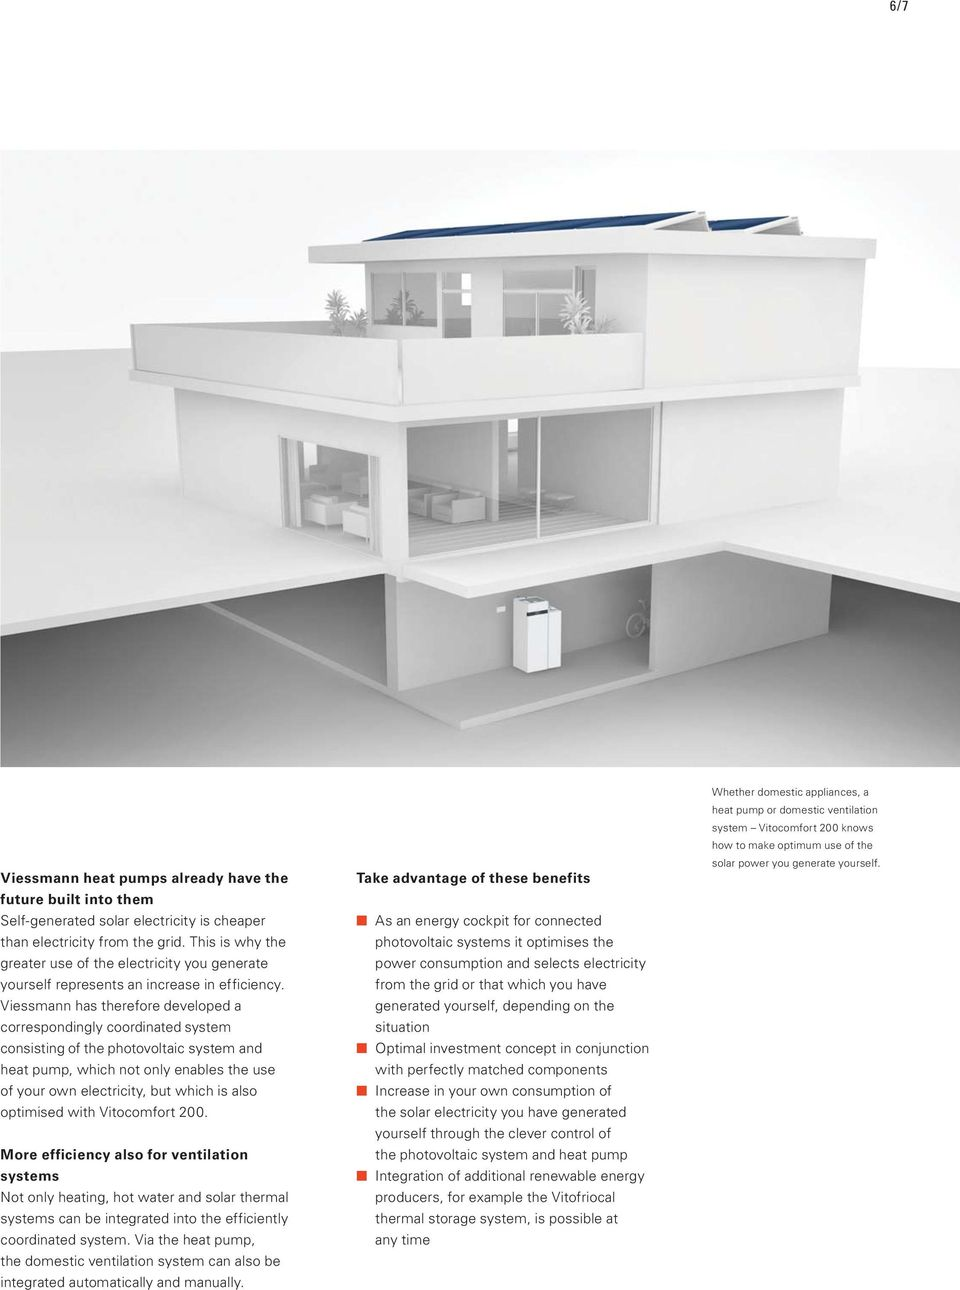 Viessmann has therefore developed a correspondingly coordinated system consisting of the photovoltaic system and heat pump, which not only enables the use of your own electricity, but which is also